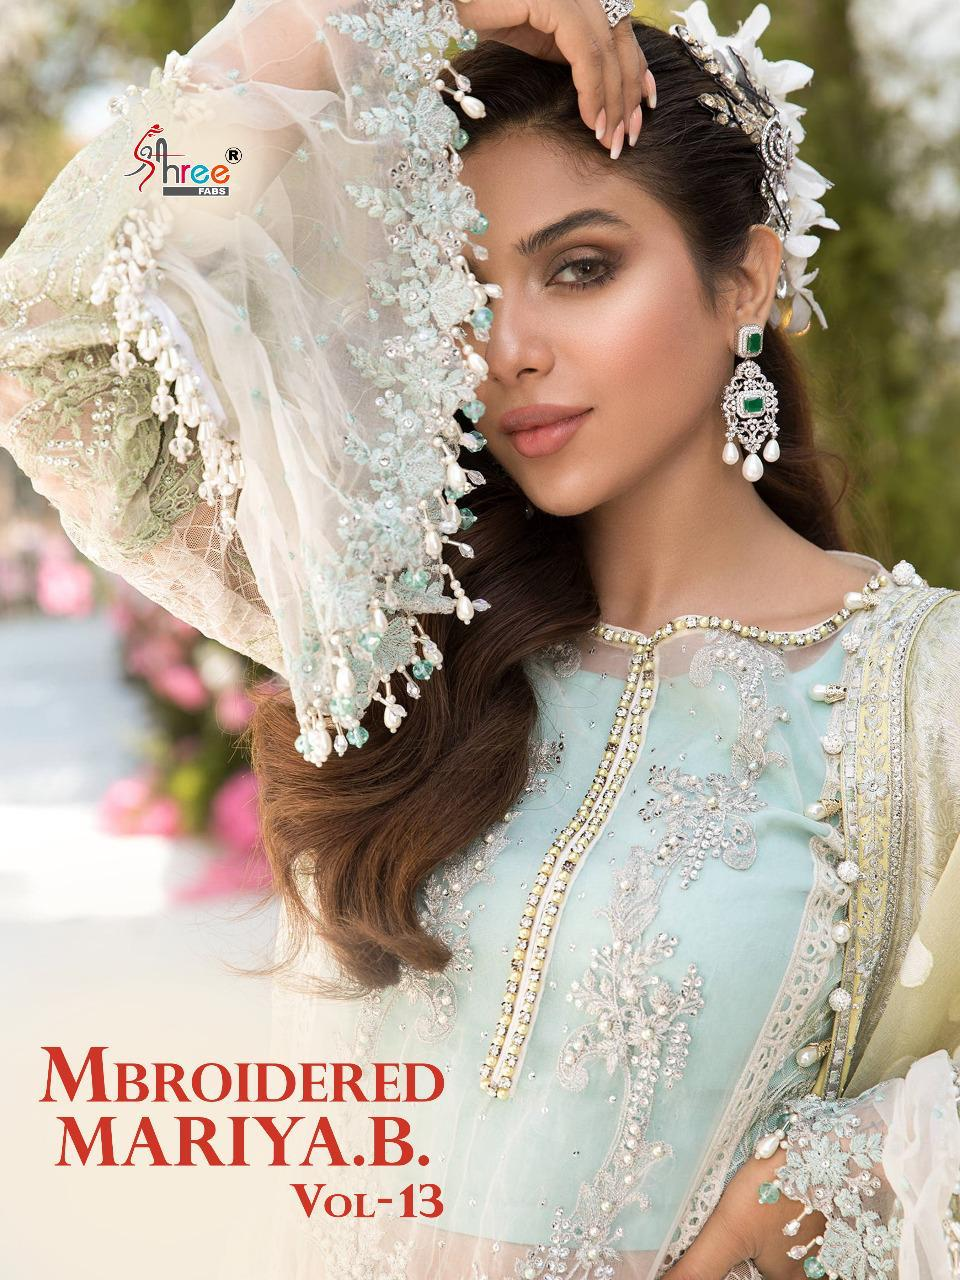 Shree Fabs Mbroidered Mariya B Vol 13 Salwar Suit Wholesale Catalog 6 Pcs 1 - Shree Fabs Mbroidered Mariya B Vol 13 Salwar Suit Wholesale Catalog 6 Pcs